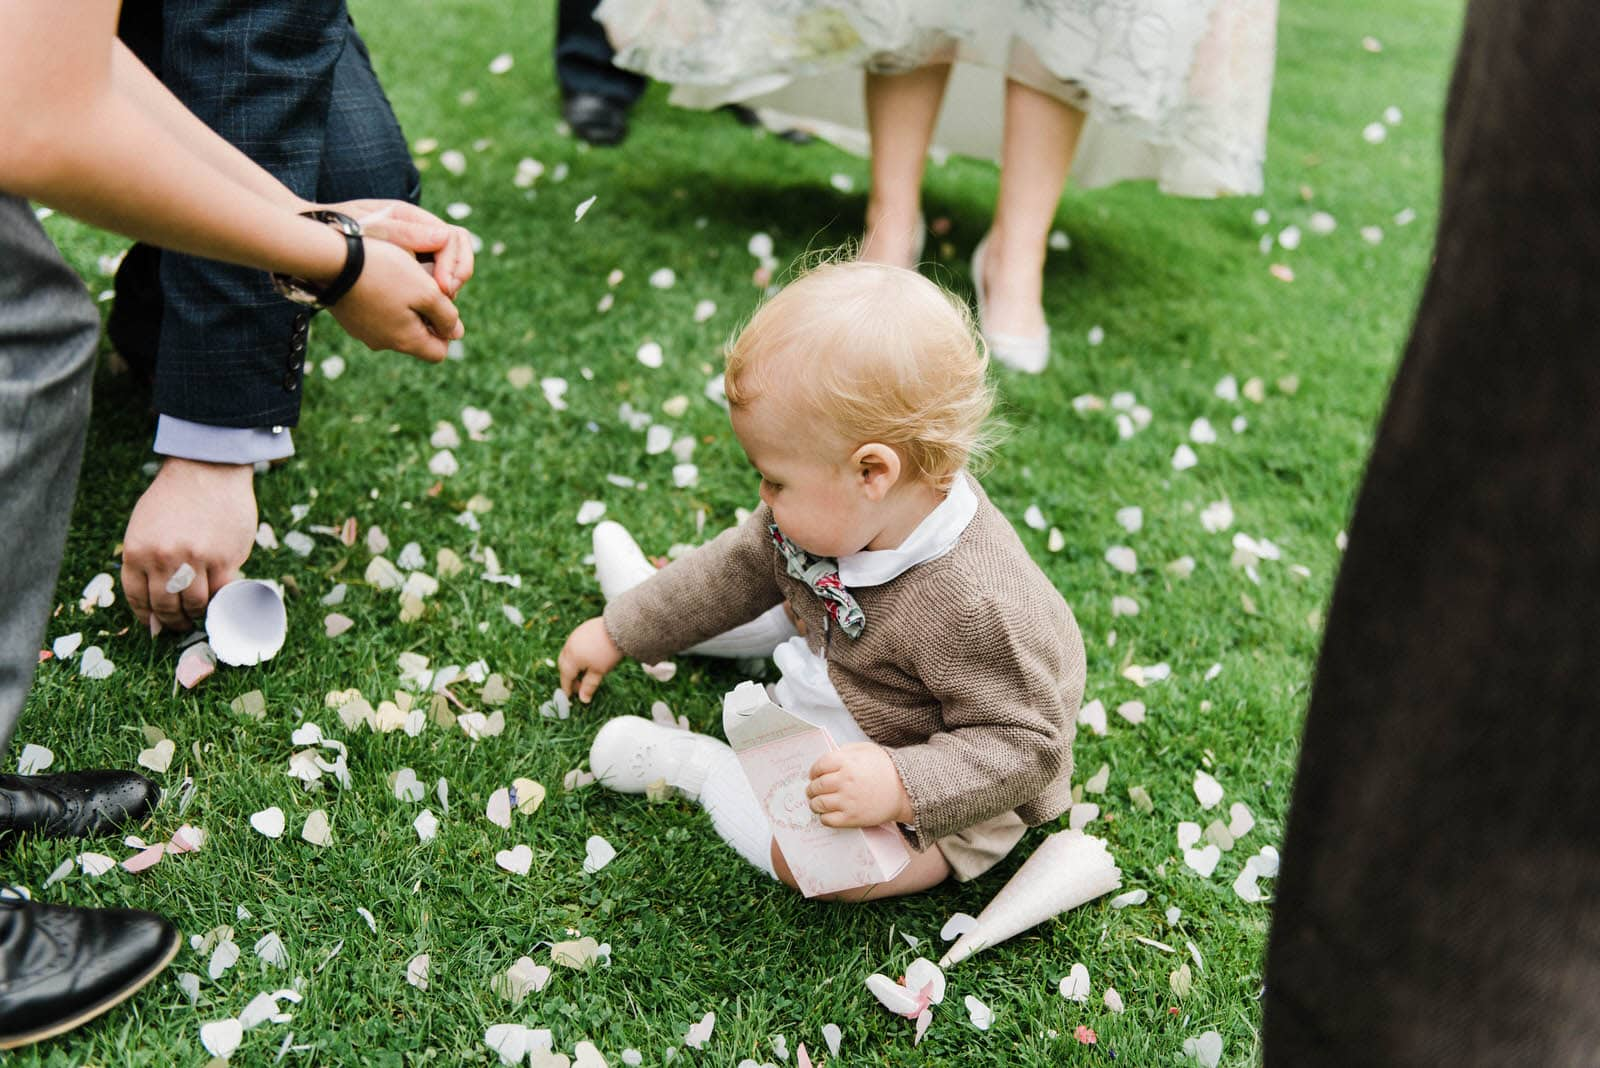 Baby sat on the grass picking up confetti at a wedding at Hirst Priory